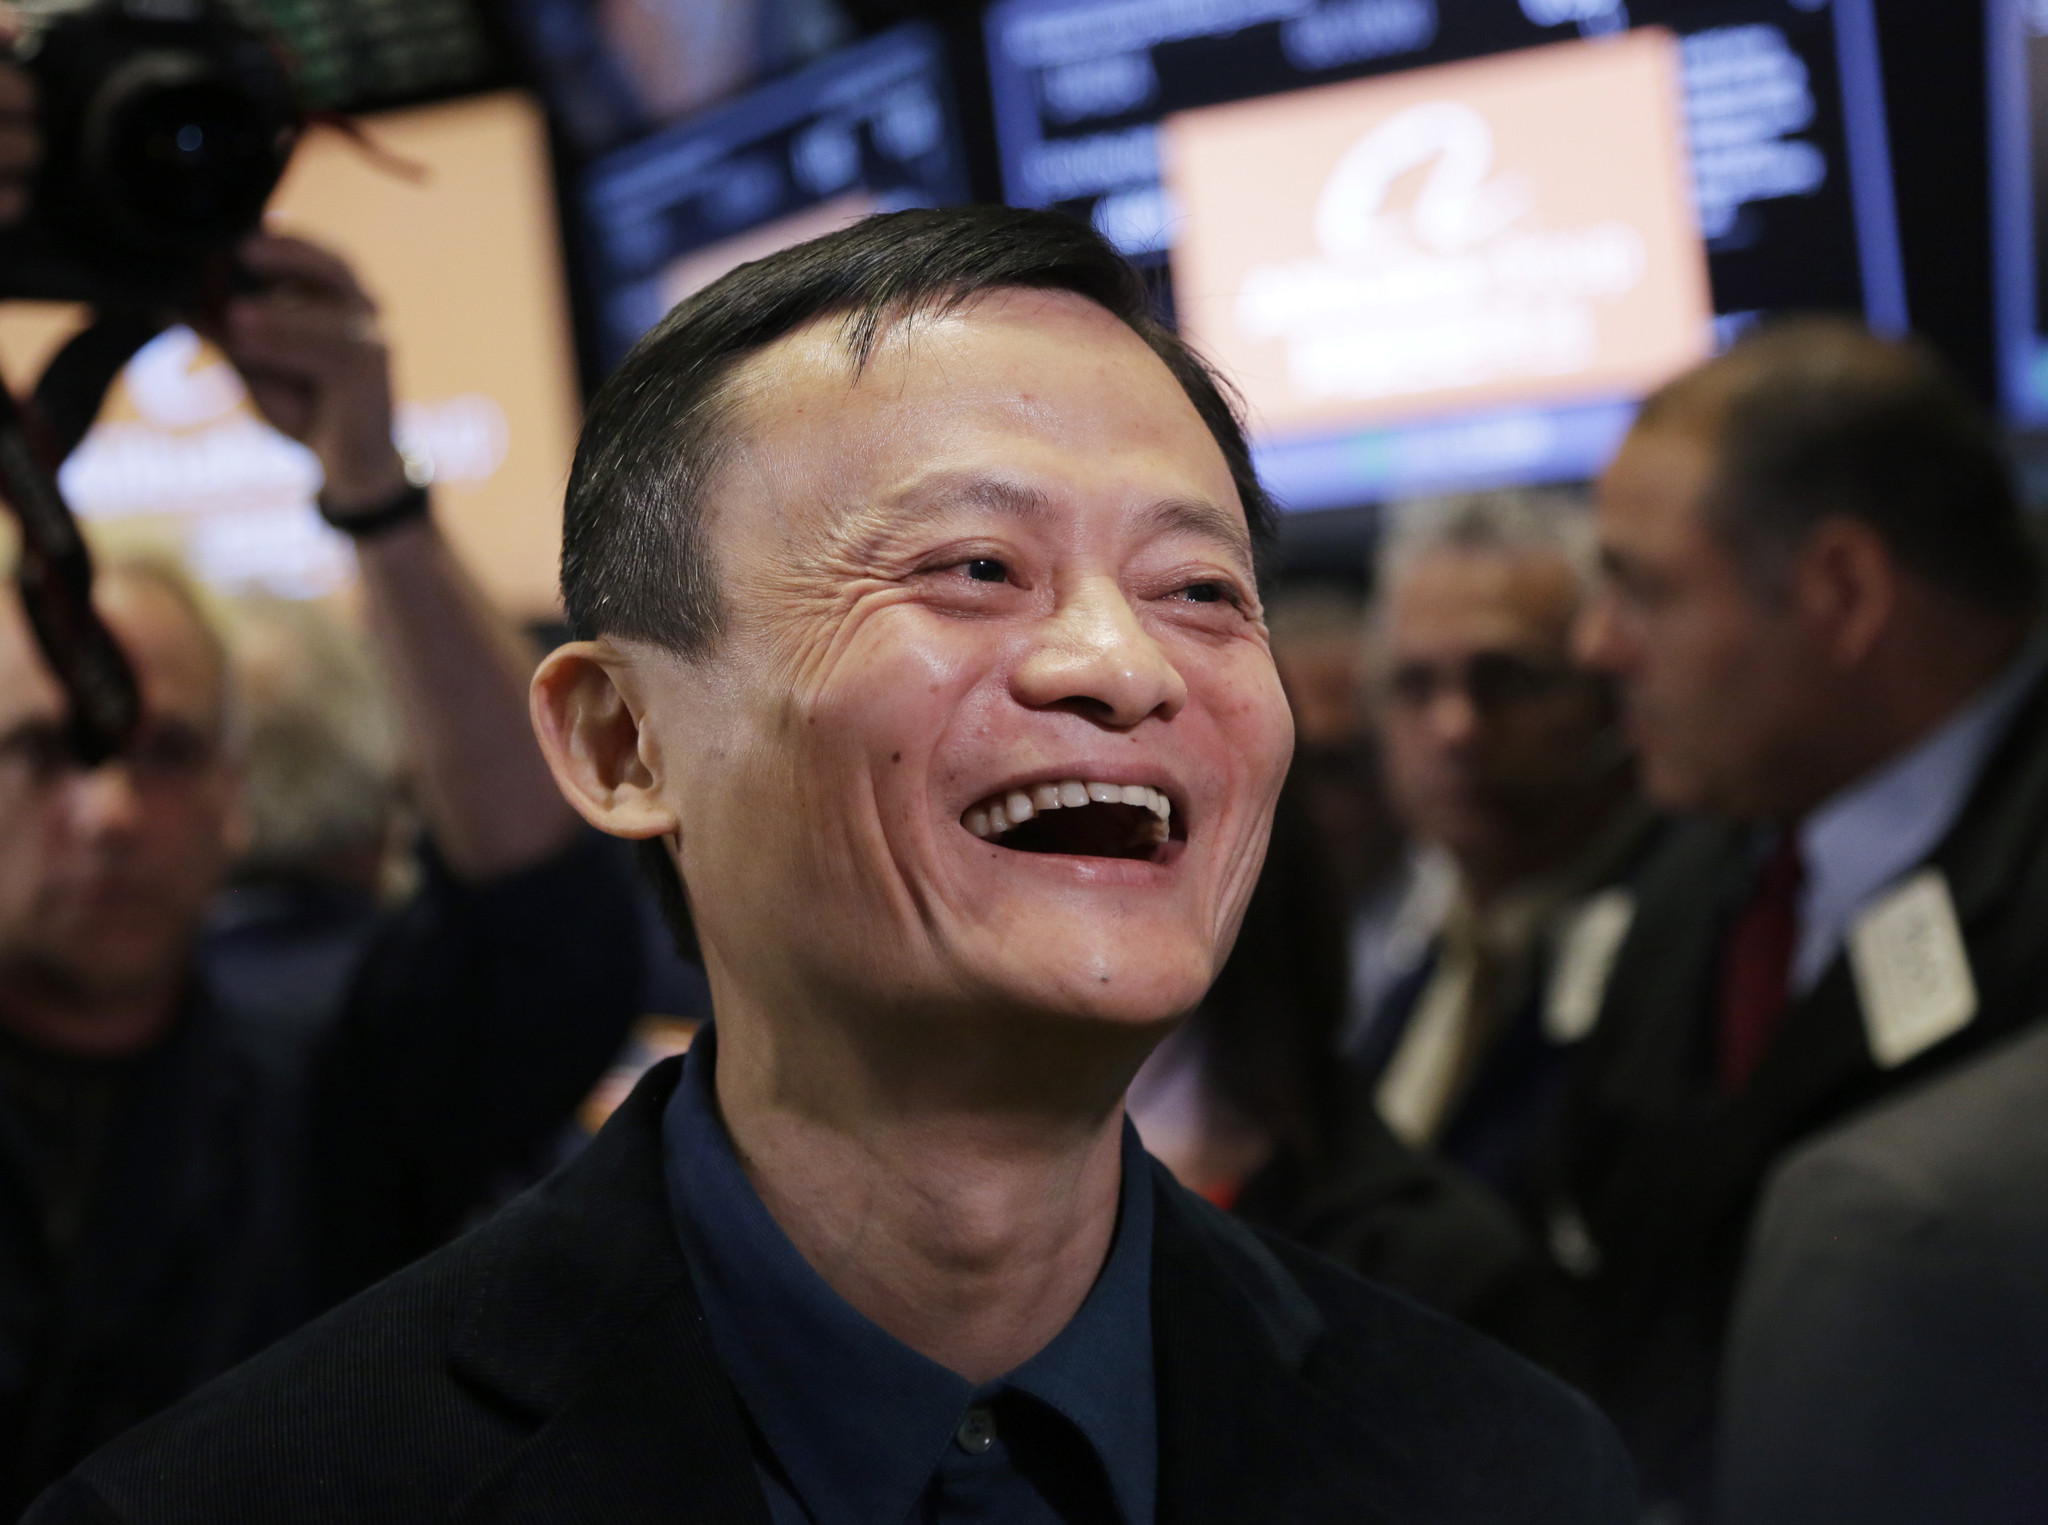 How did Alibaba's resounding stock market debut compare?